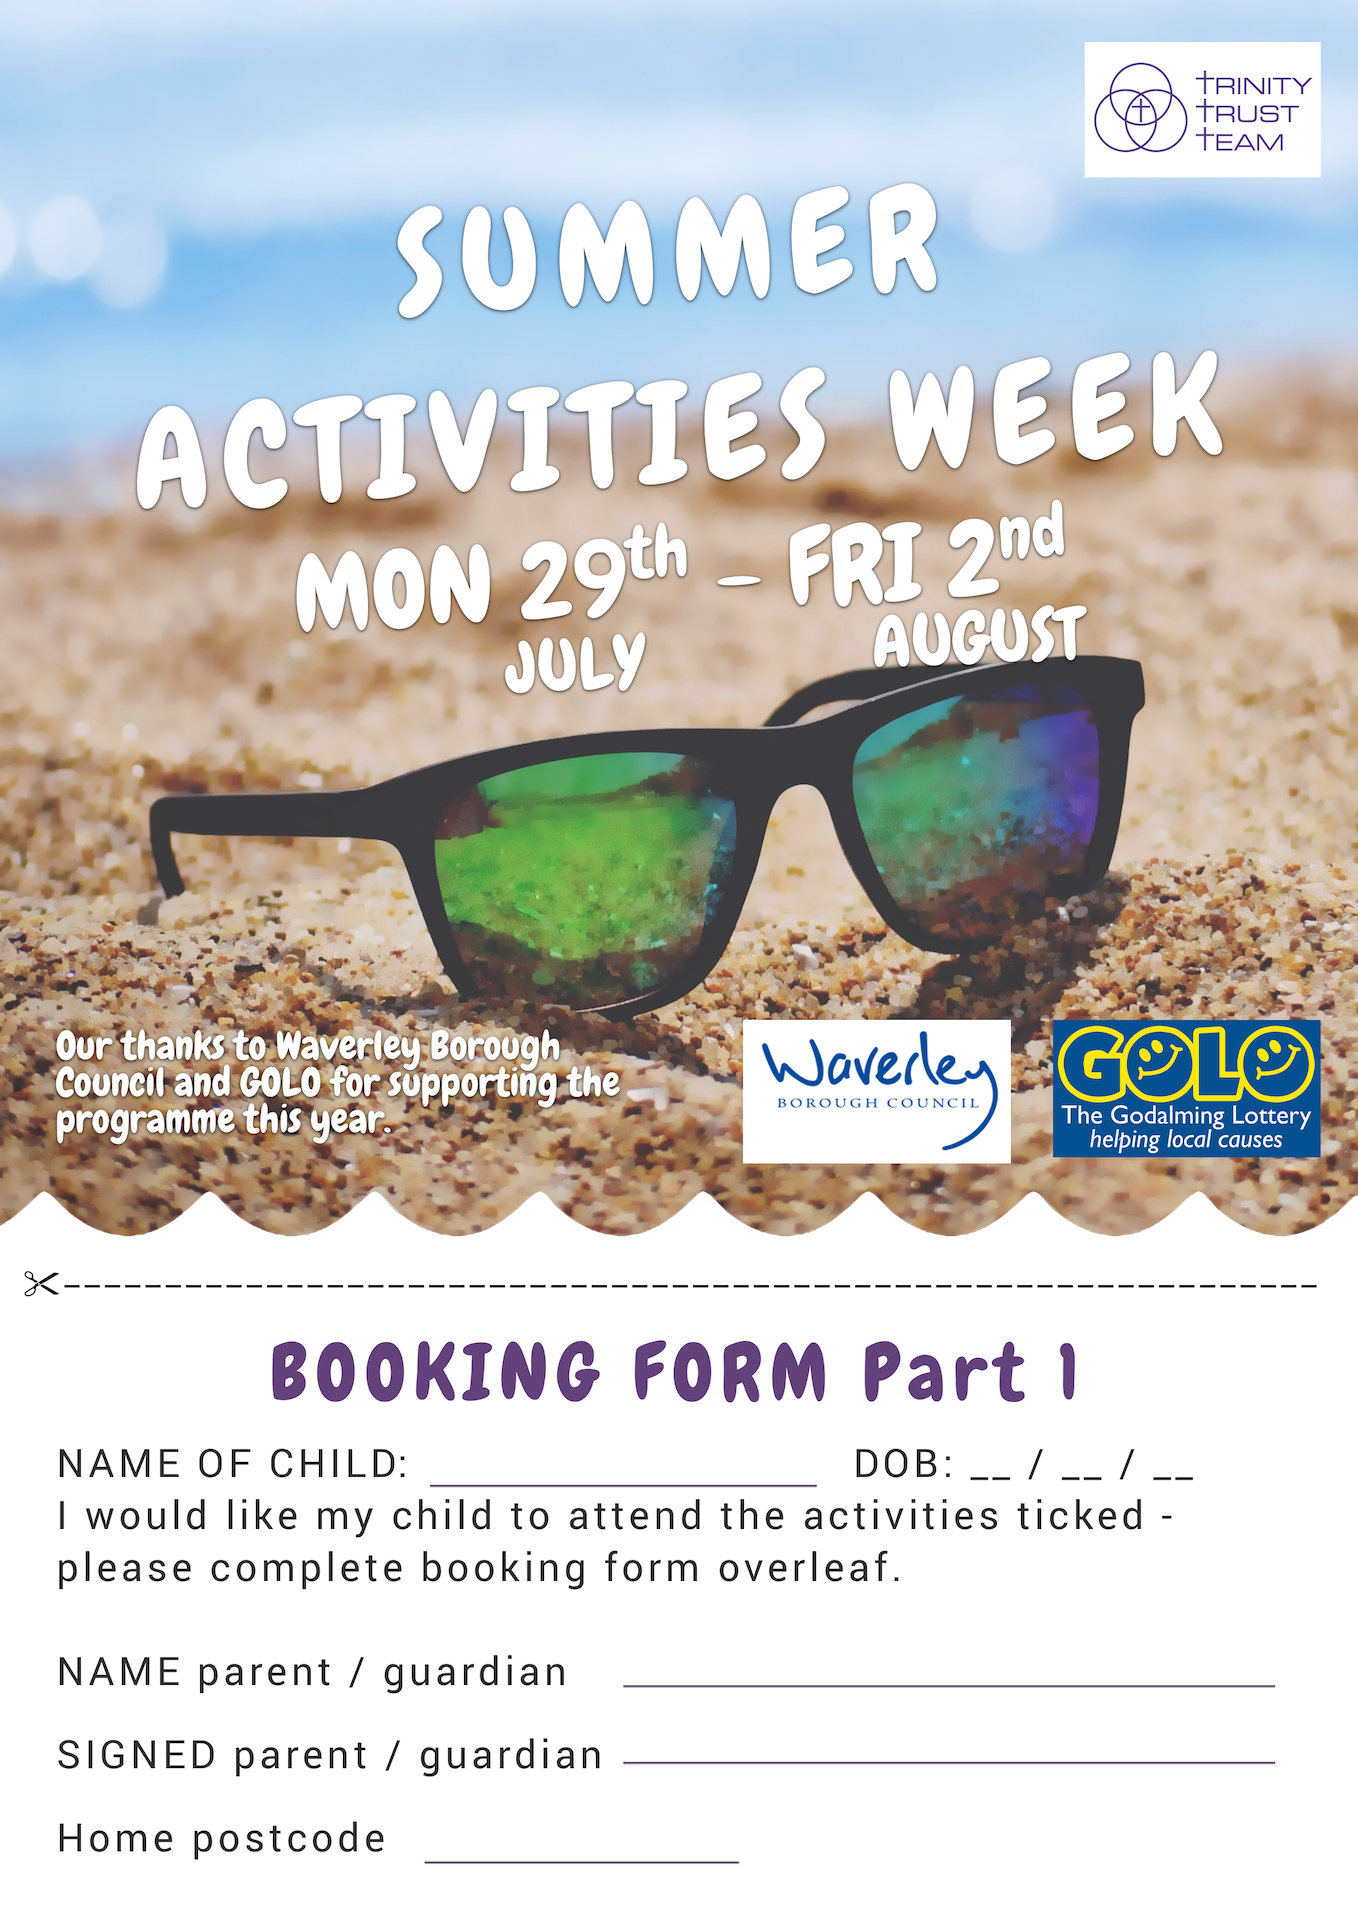 Trinity Trust Team Summer Activities Week 2019